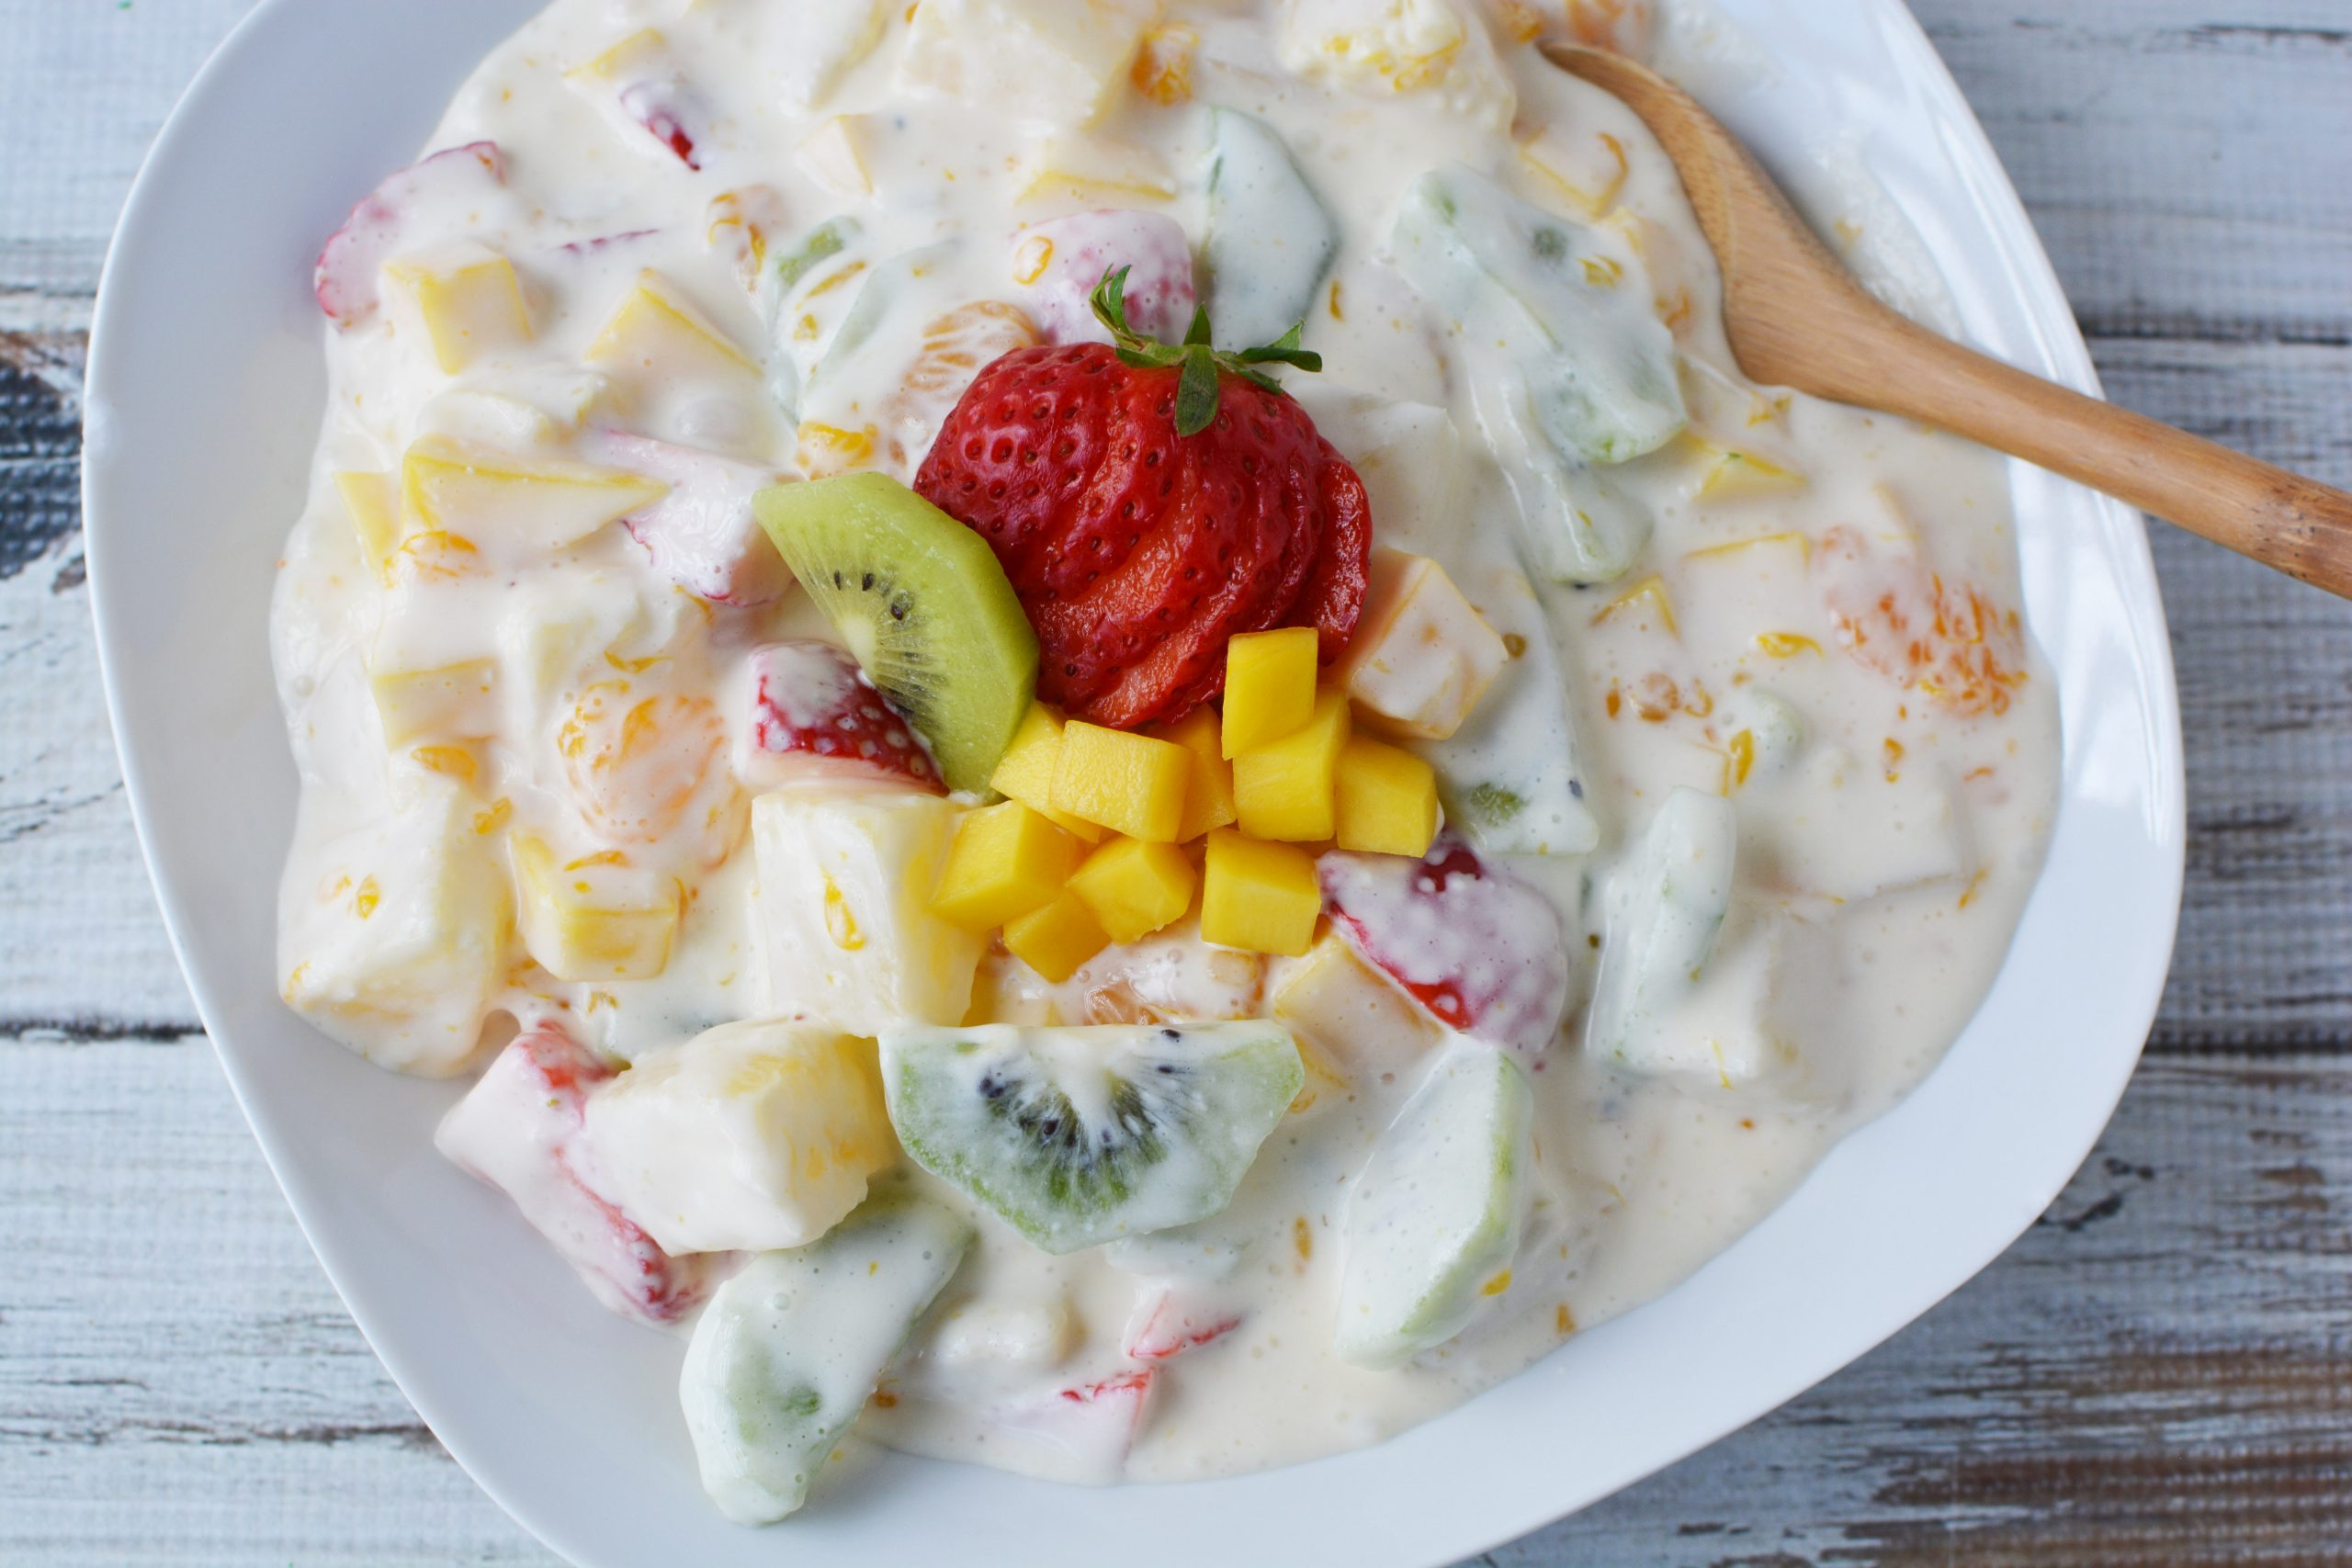 Hawaiian Cheesecake Salad Recipe has tropical fruit, cream cheese and instant pudding mix